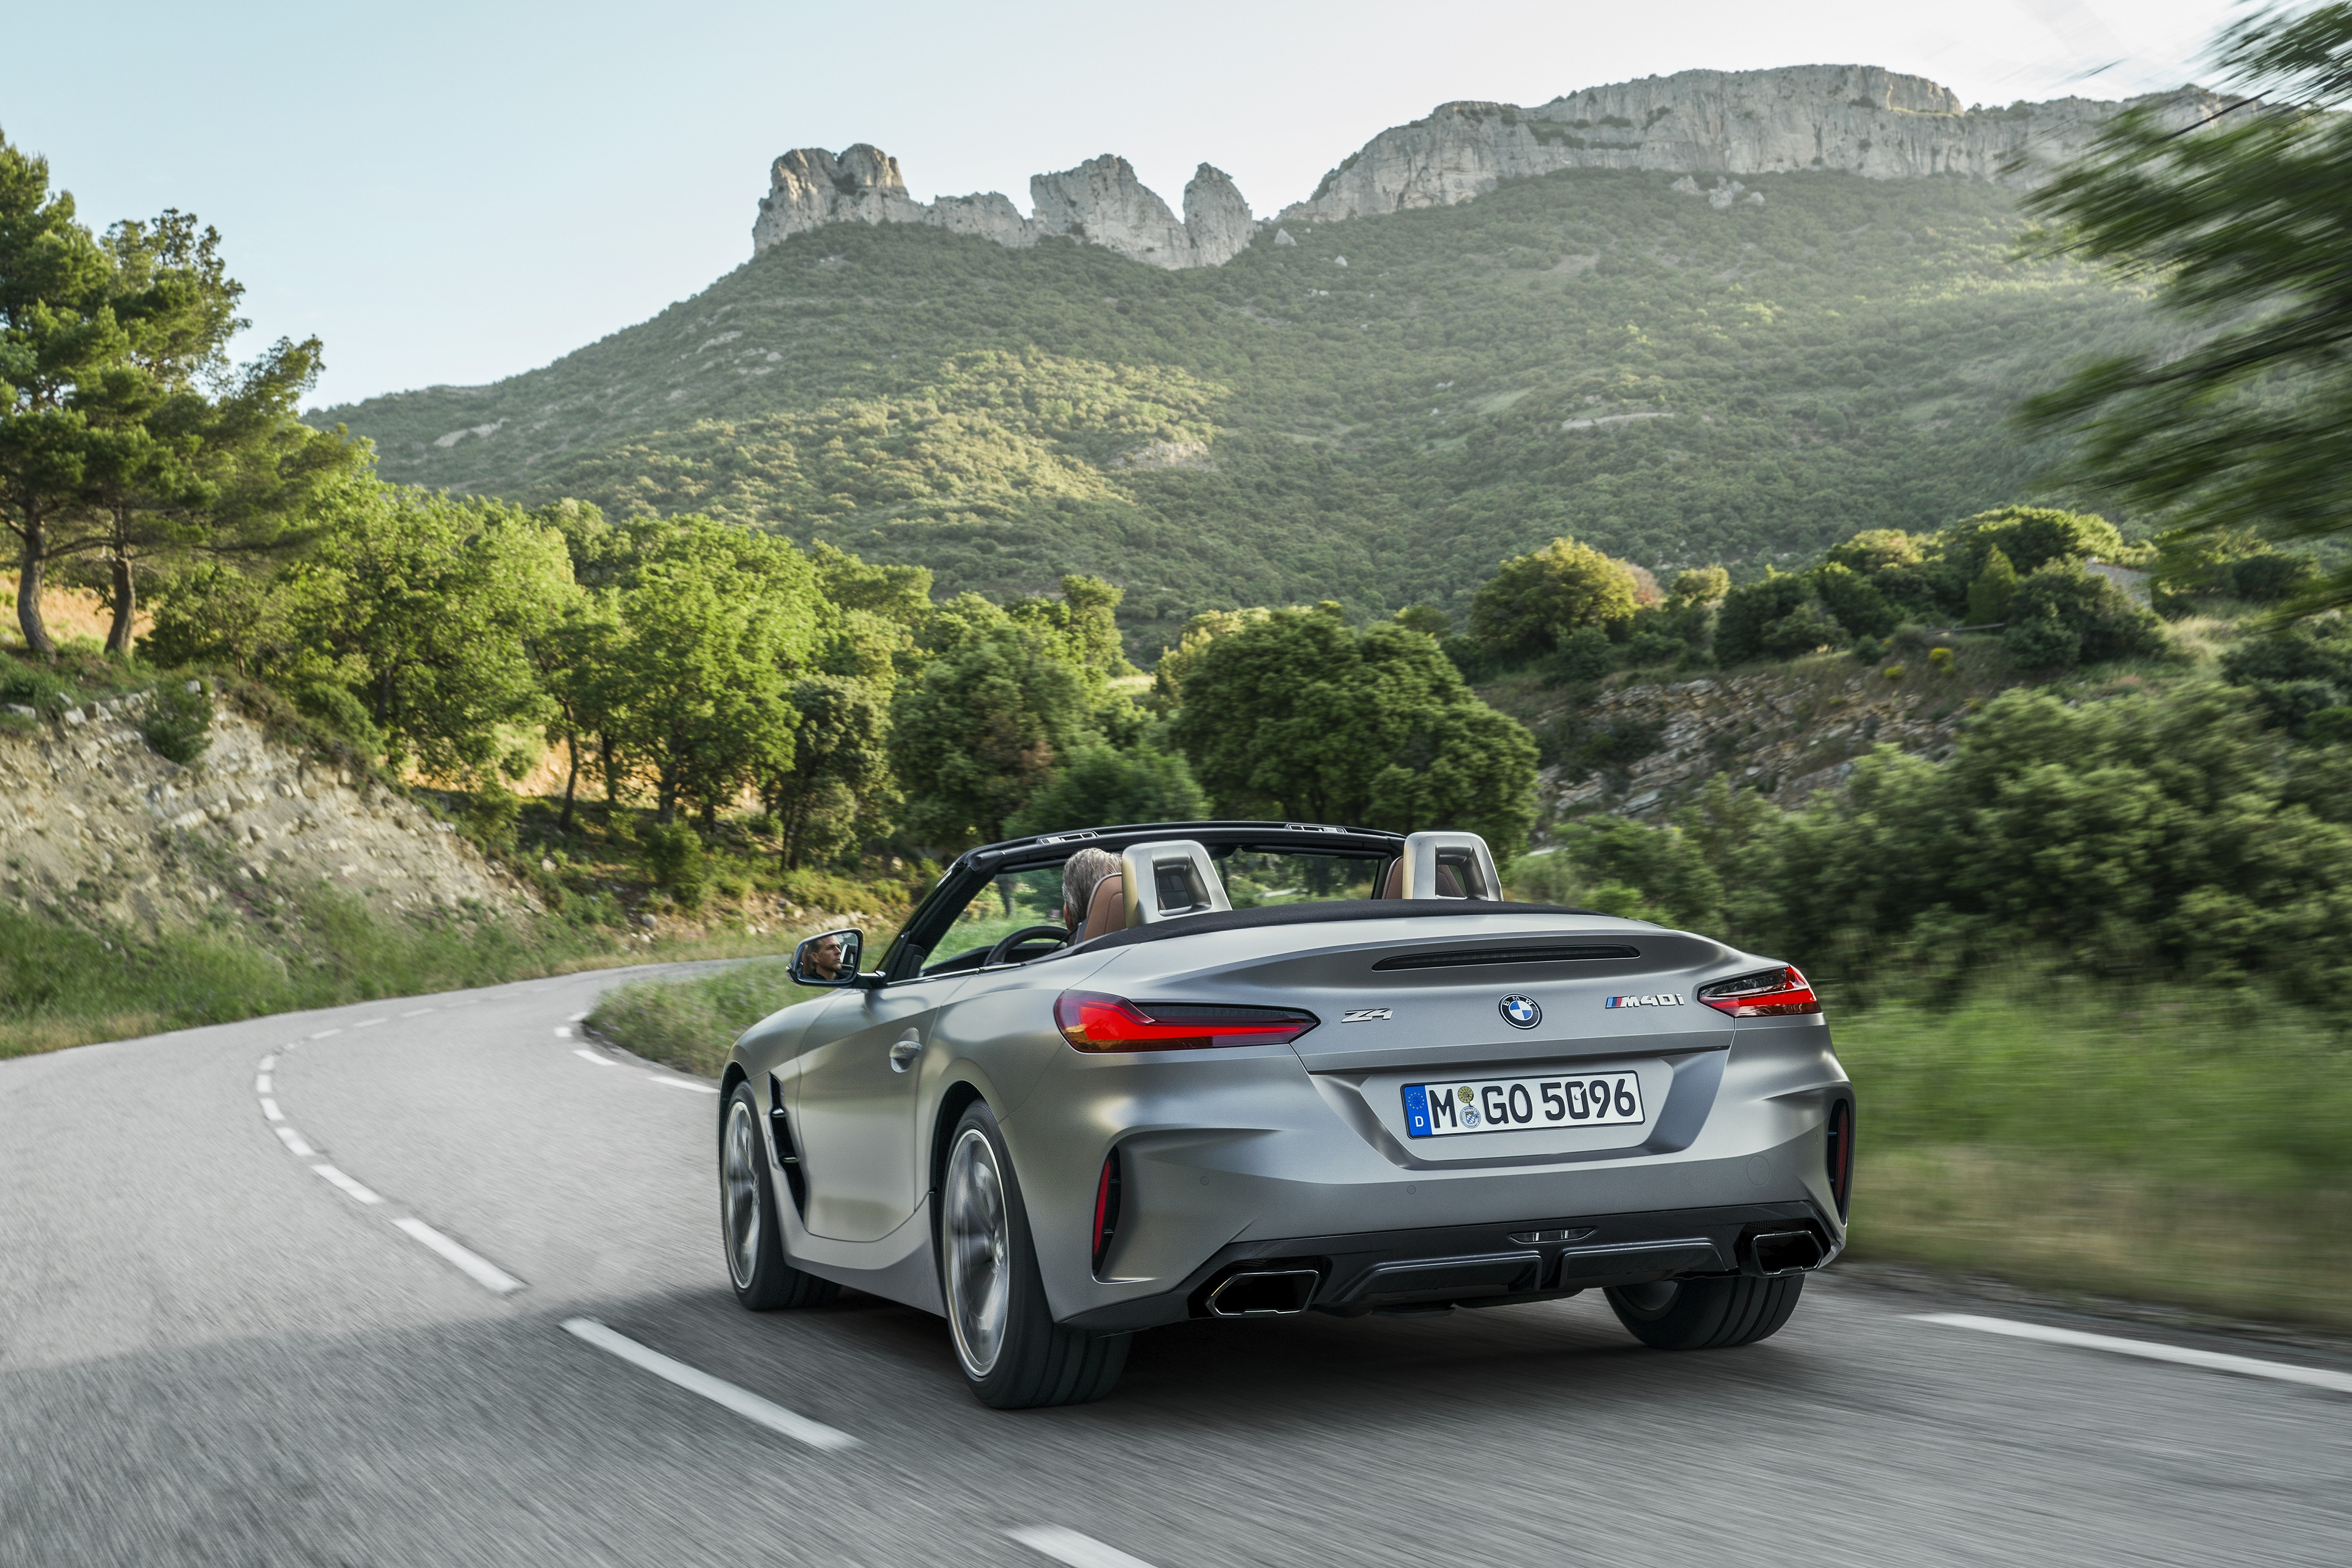 bmw presents official car lineup for the 2018 paris motor show